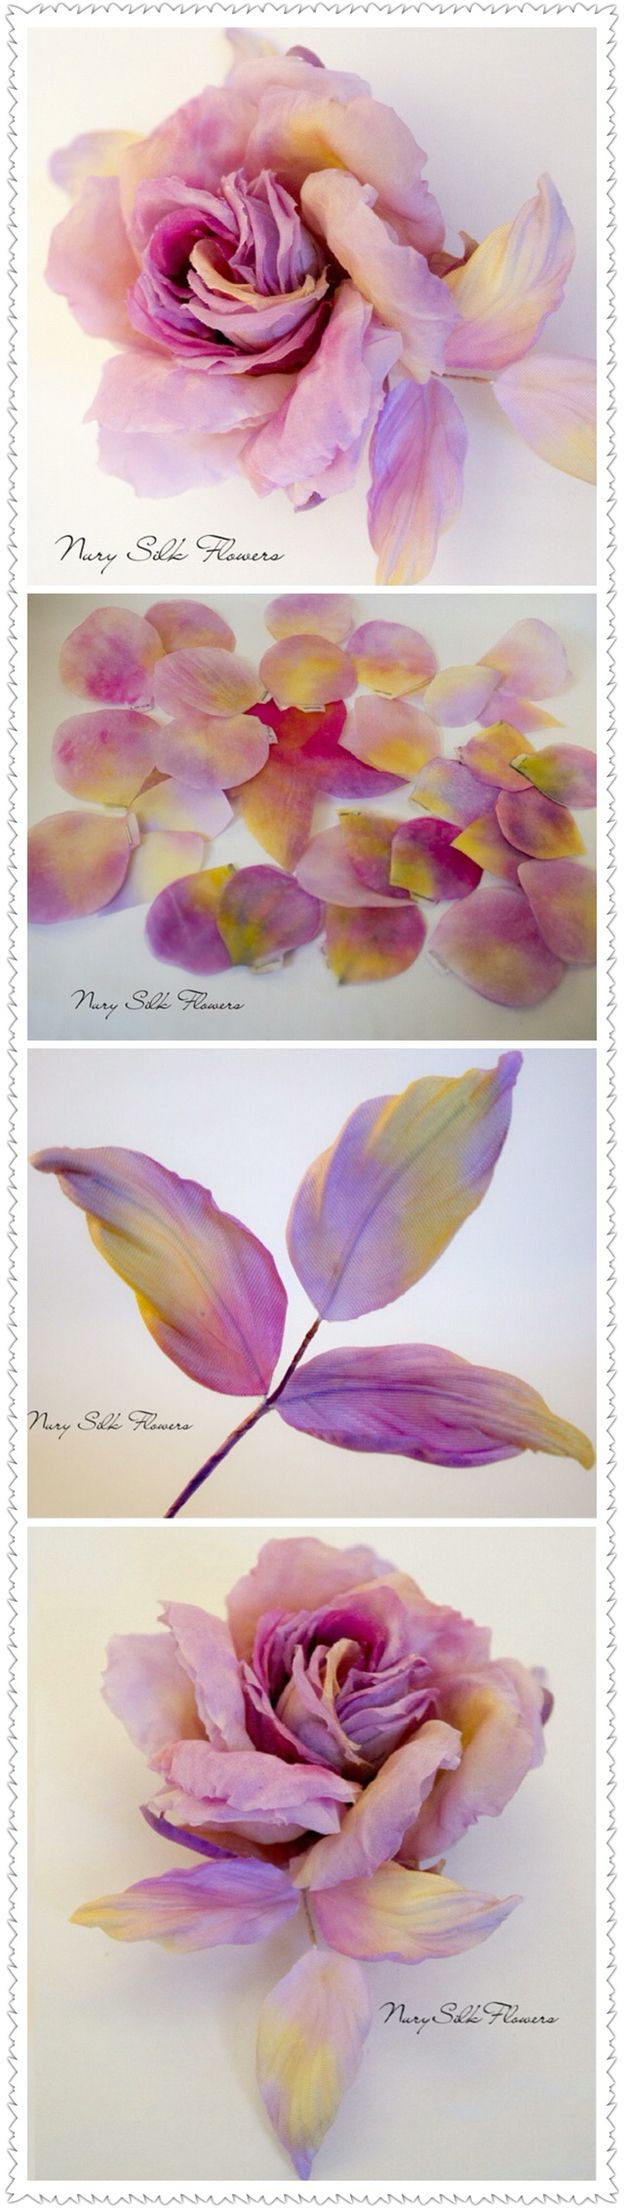 1206 best paper flowers images on pinterest paper flowers paper